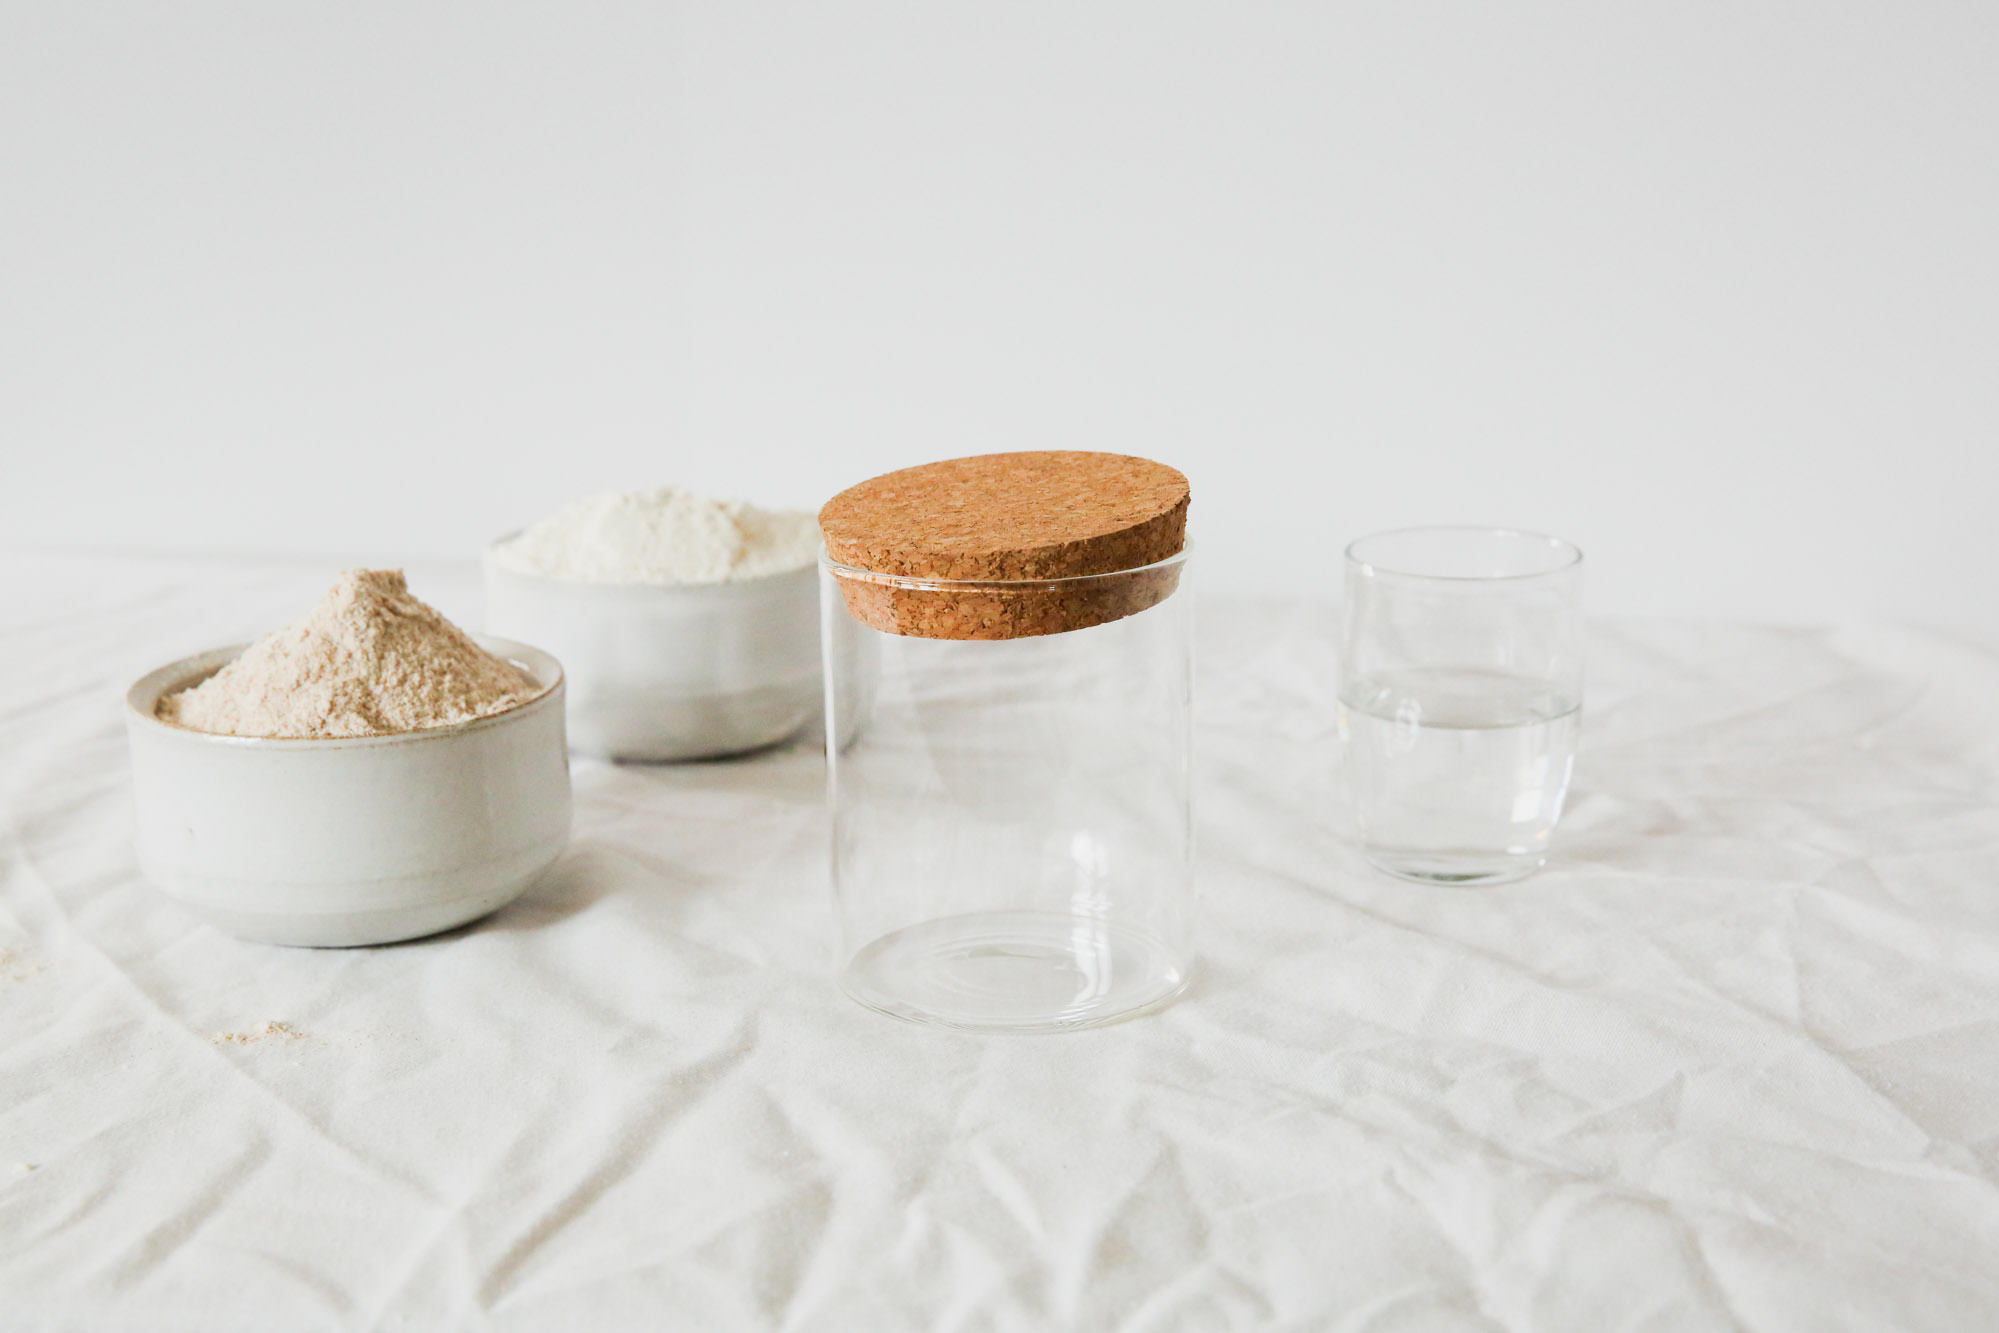 From left to right: Whole wheat flour, unbleached white flour, glass container (preferably with straight sides), water